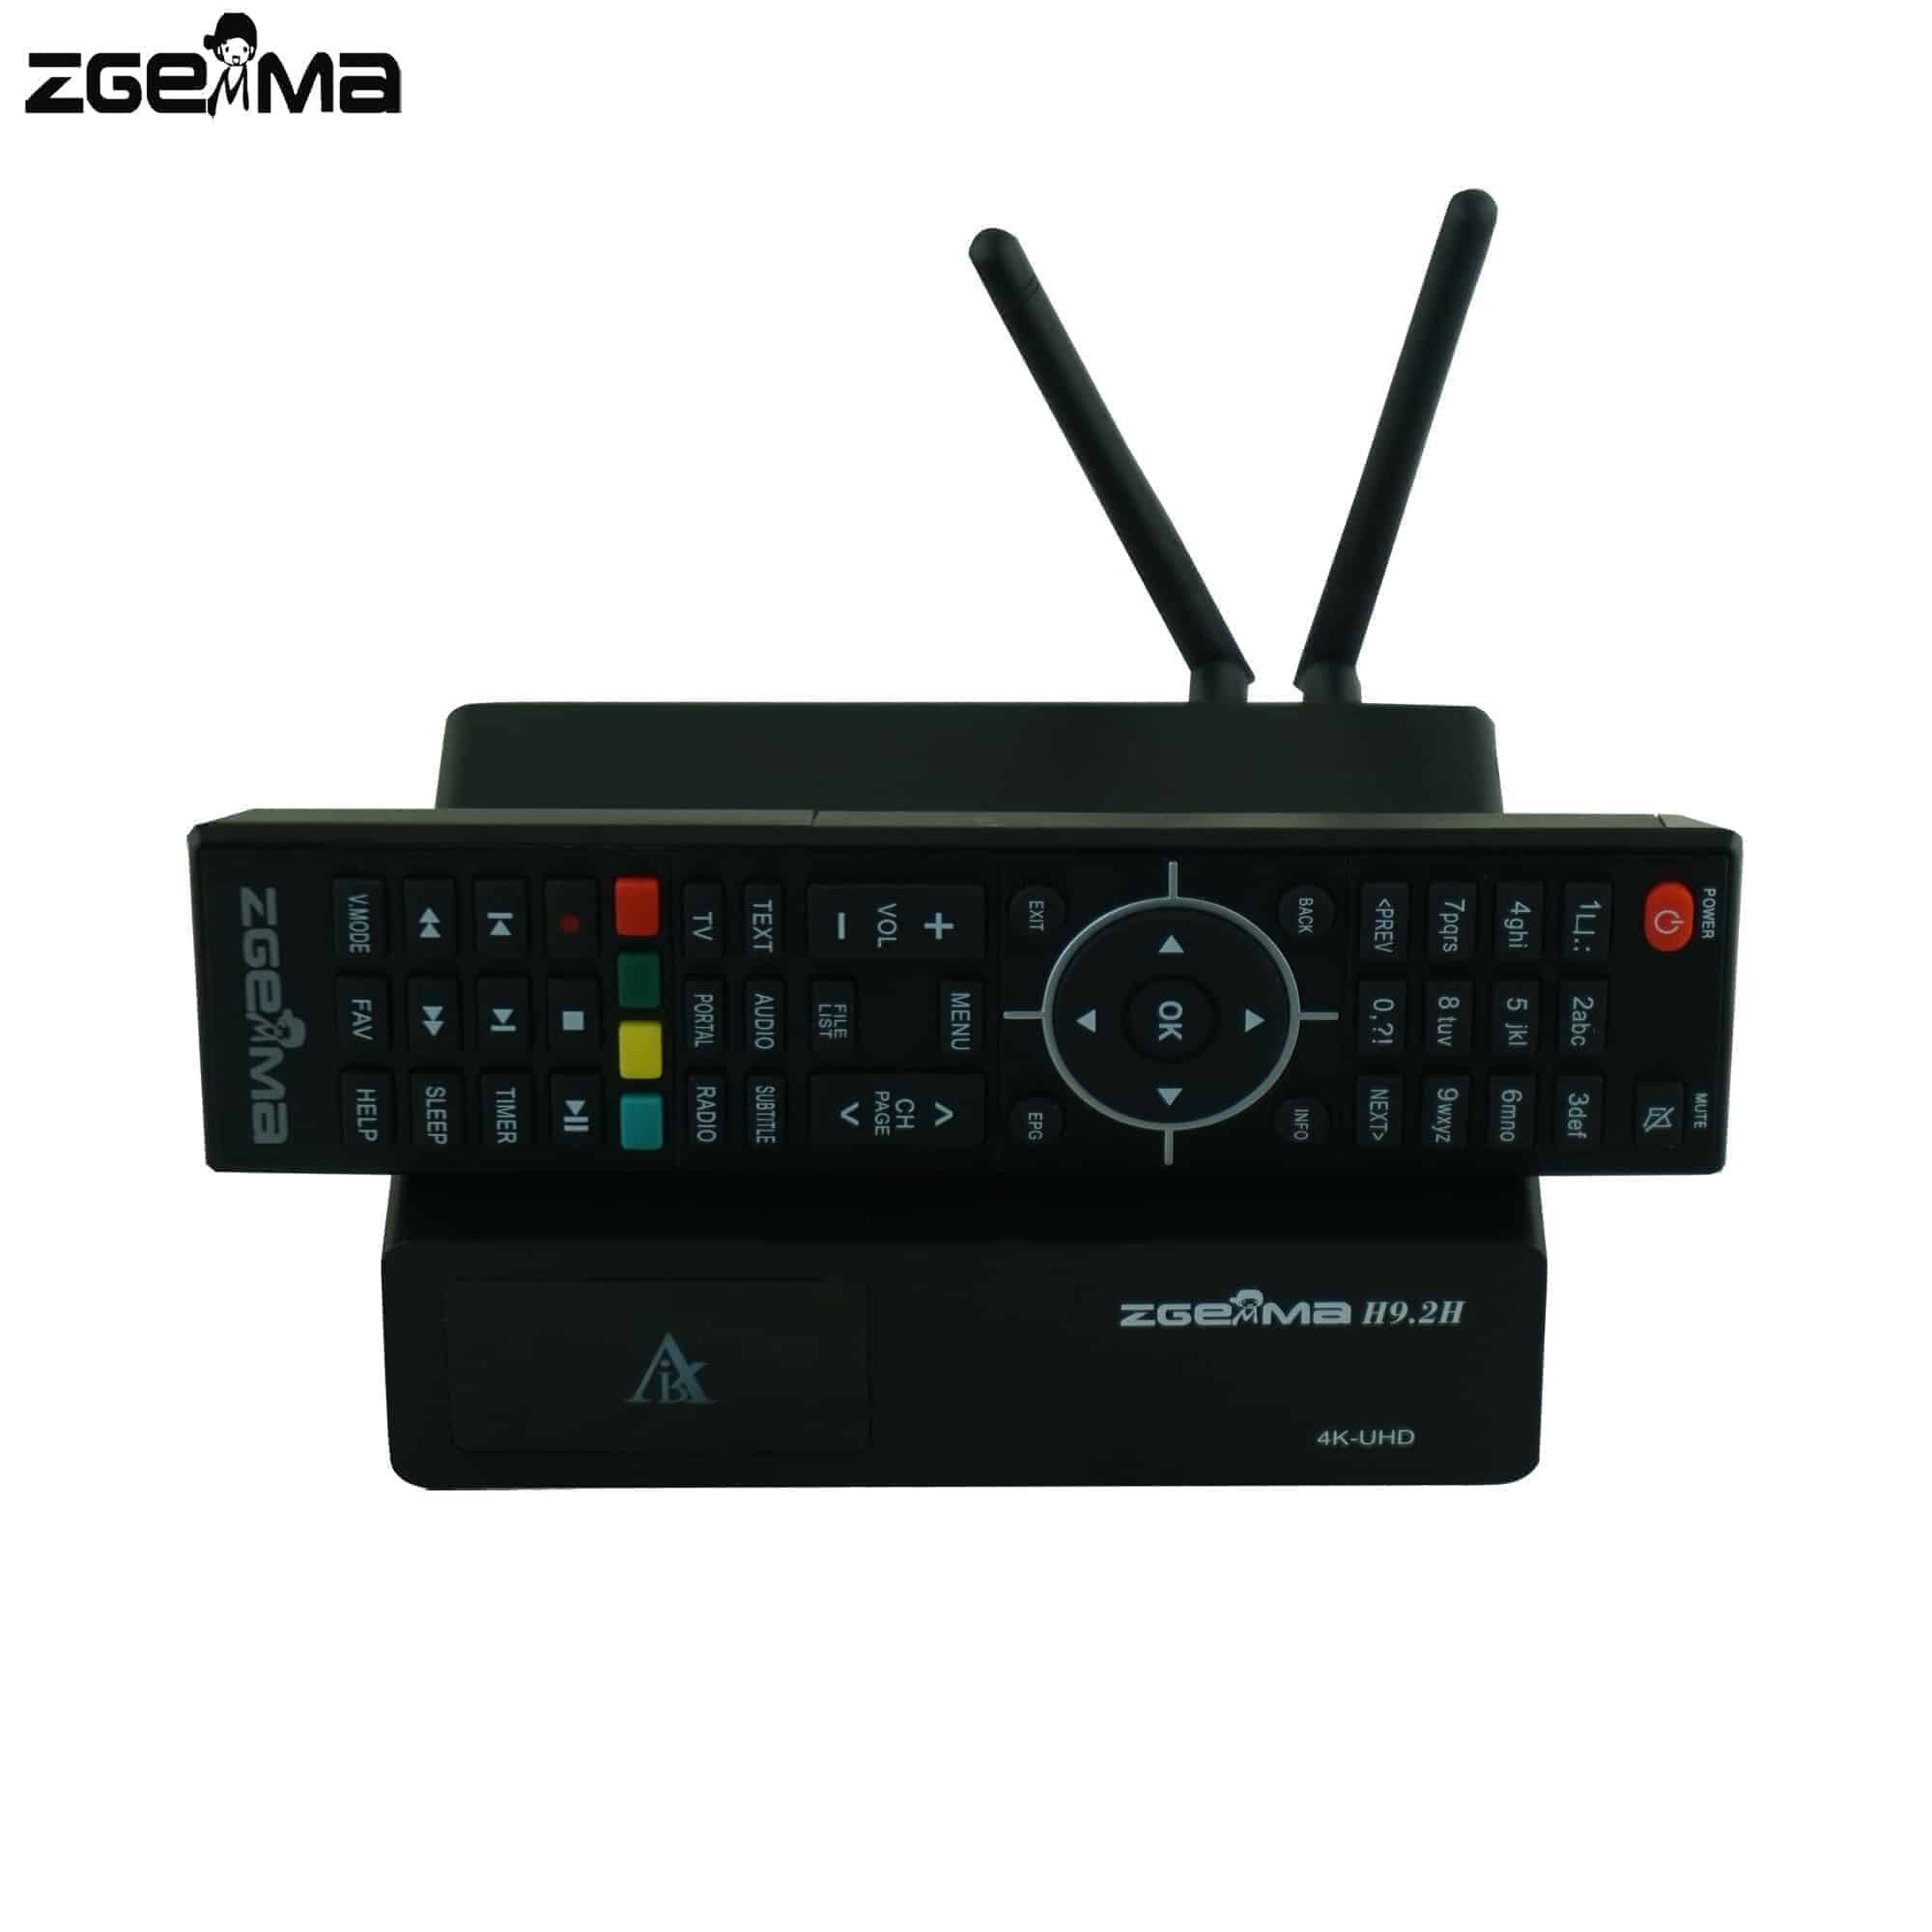 ZGEMMA H9 2H | Combo Tuner (Cable & Satellite) | Enigma 2 TV Box | Built in  WiFi